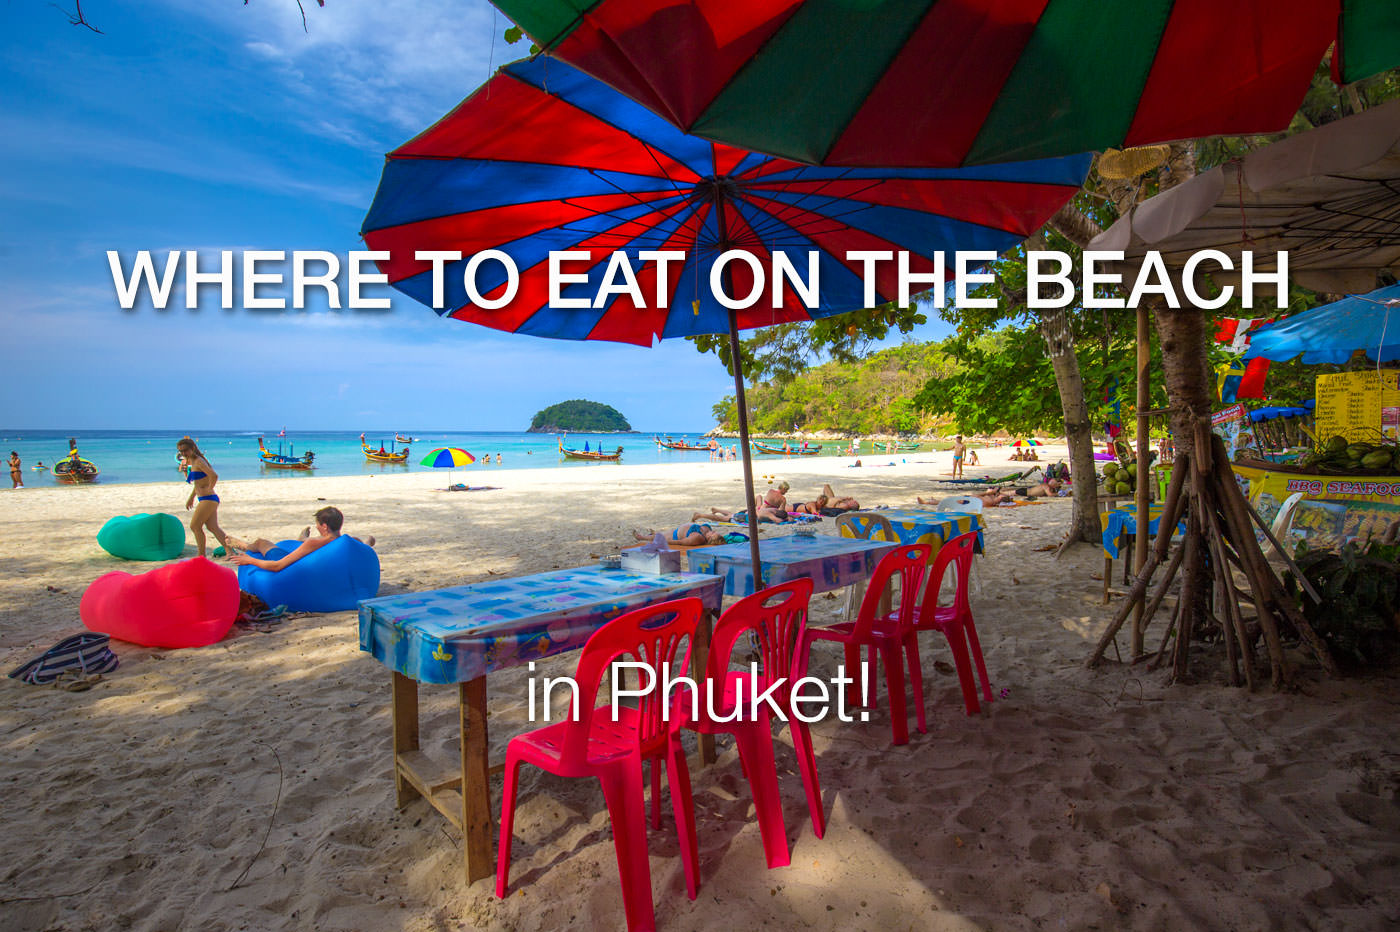 Phuket Beach Restaurants